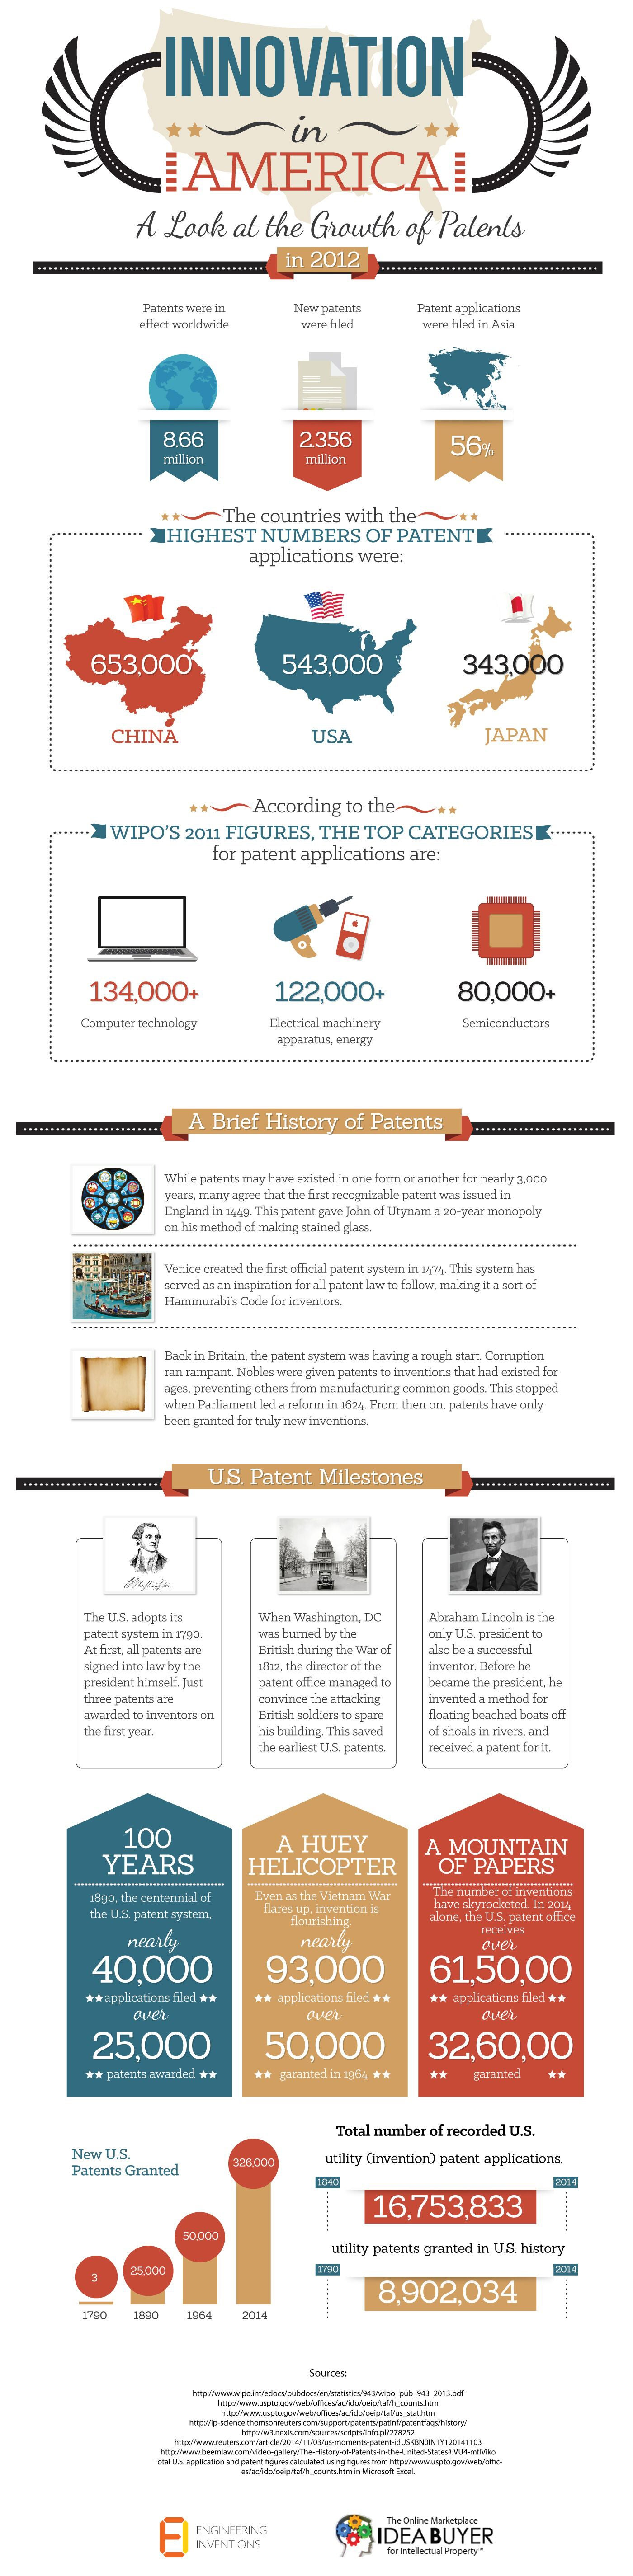 How Patents Proliferated in the U.S. and Around the Globe (Infographic)